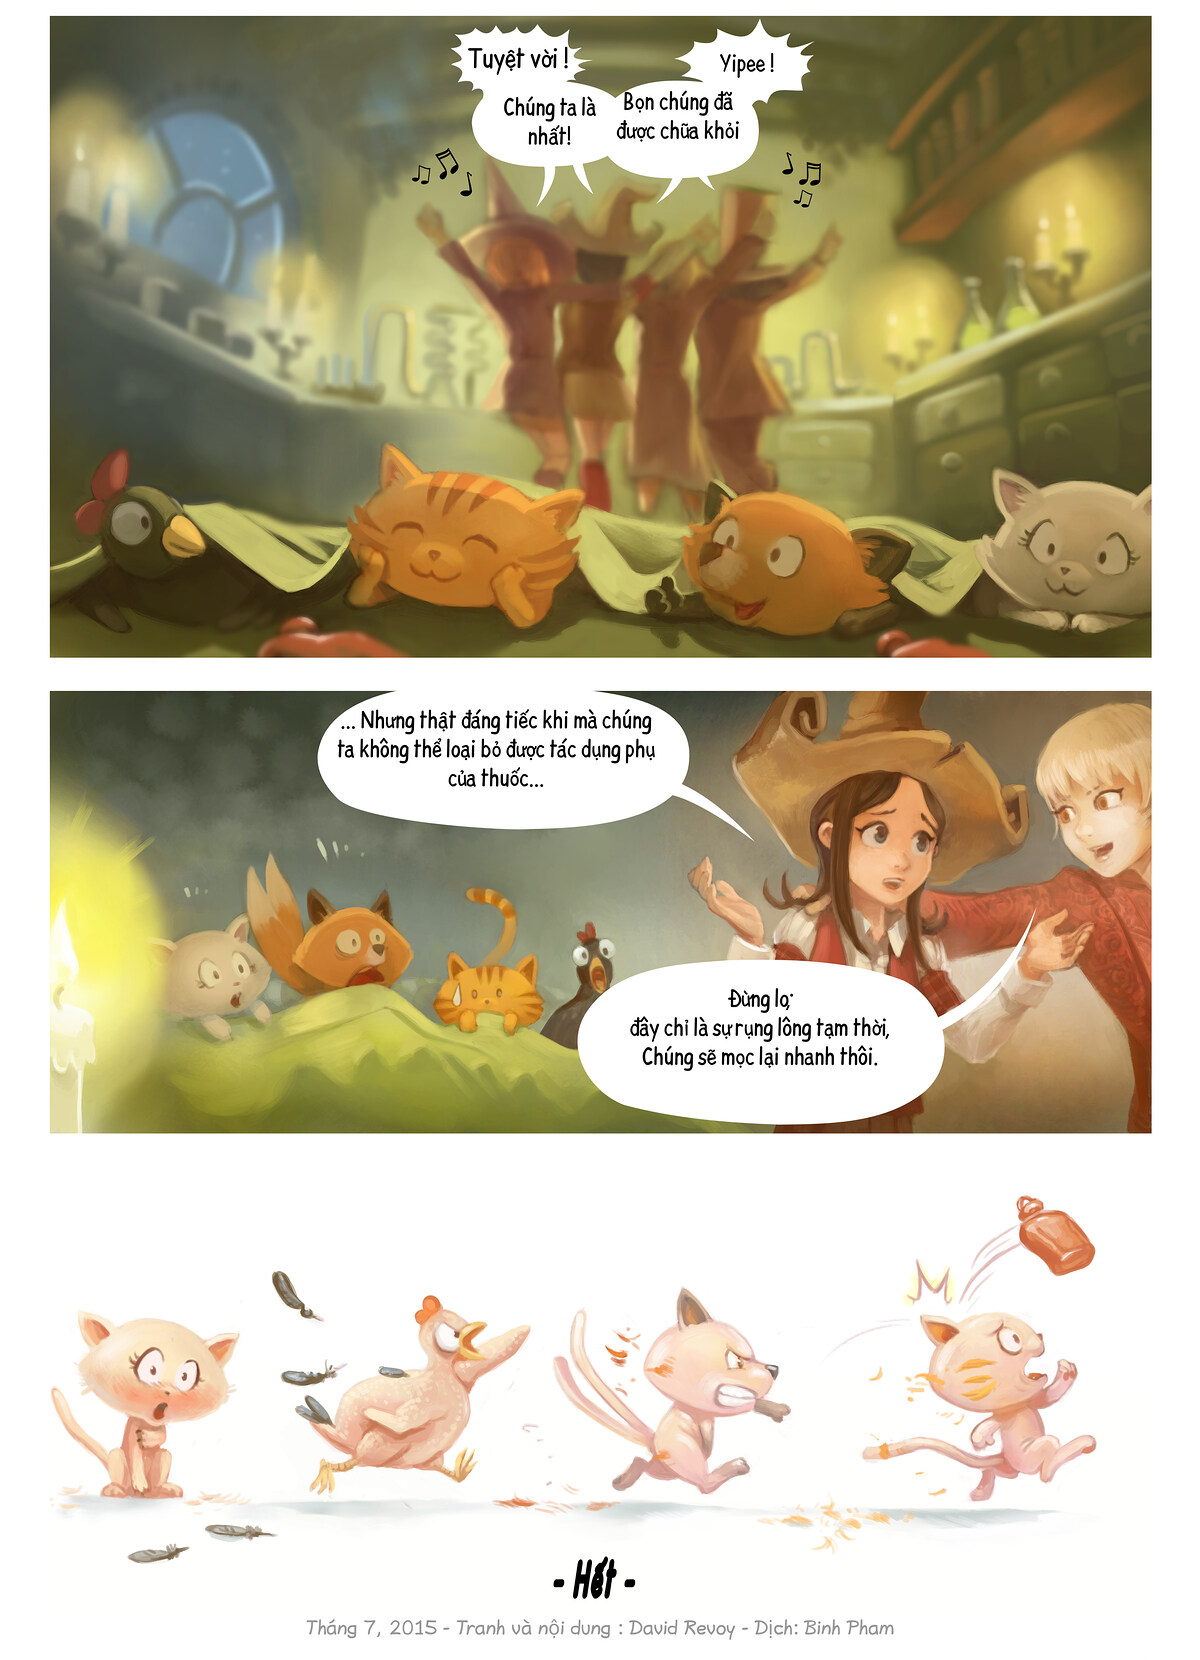 A webcomic page of Pepper&Carrot, Tập 9 [vi], trang 7